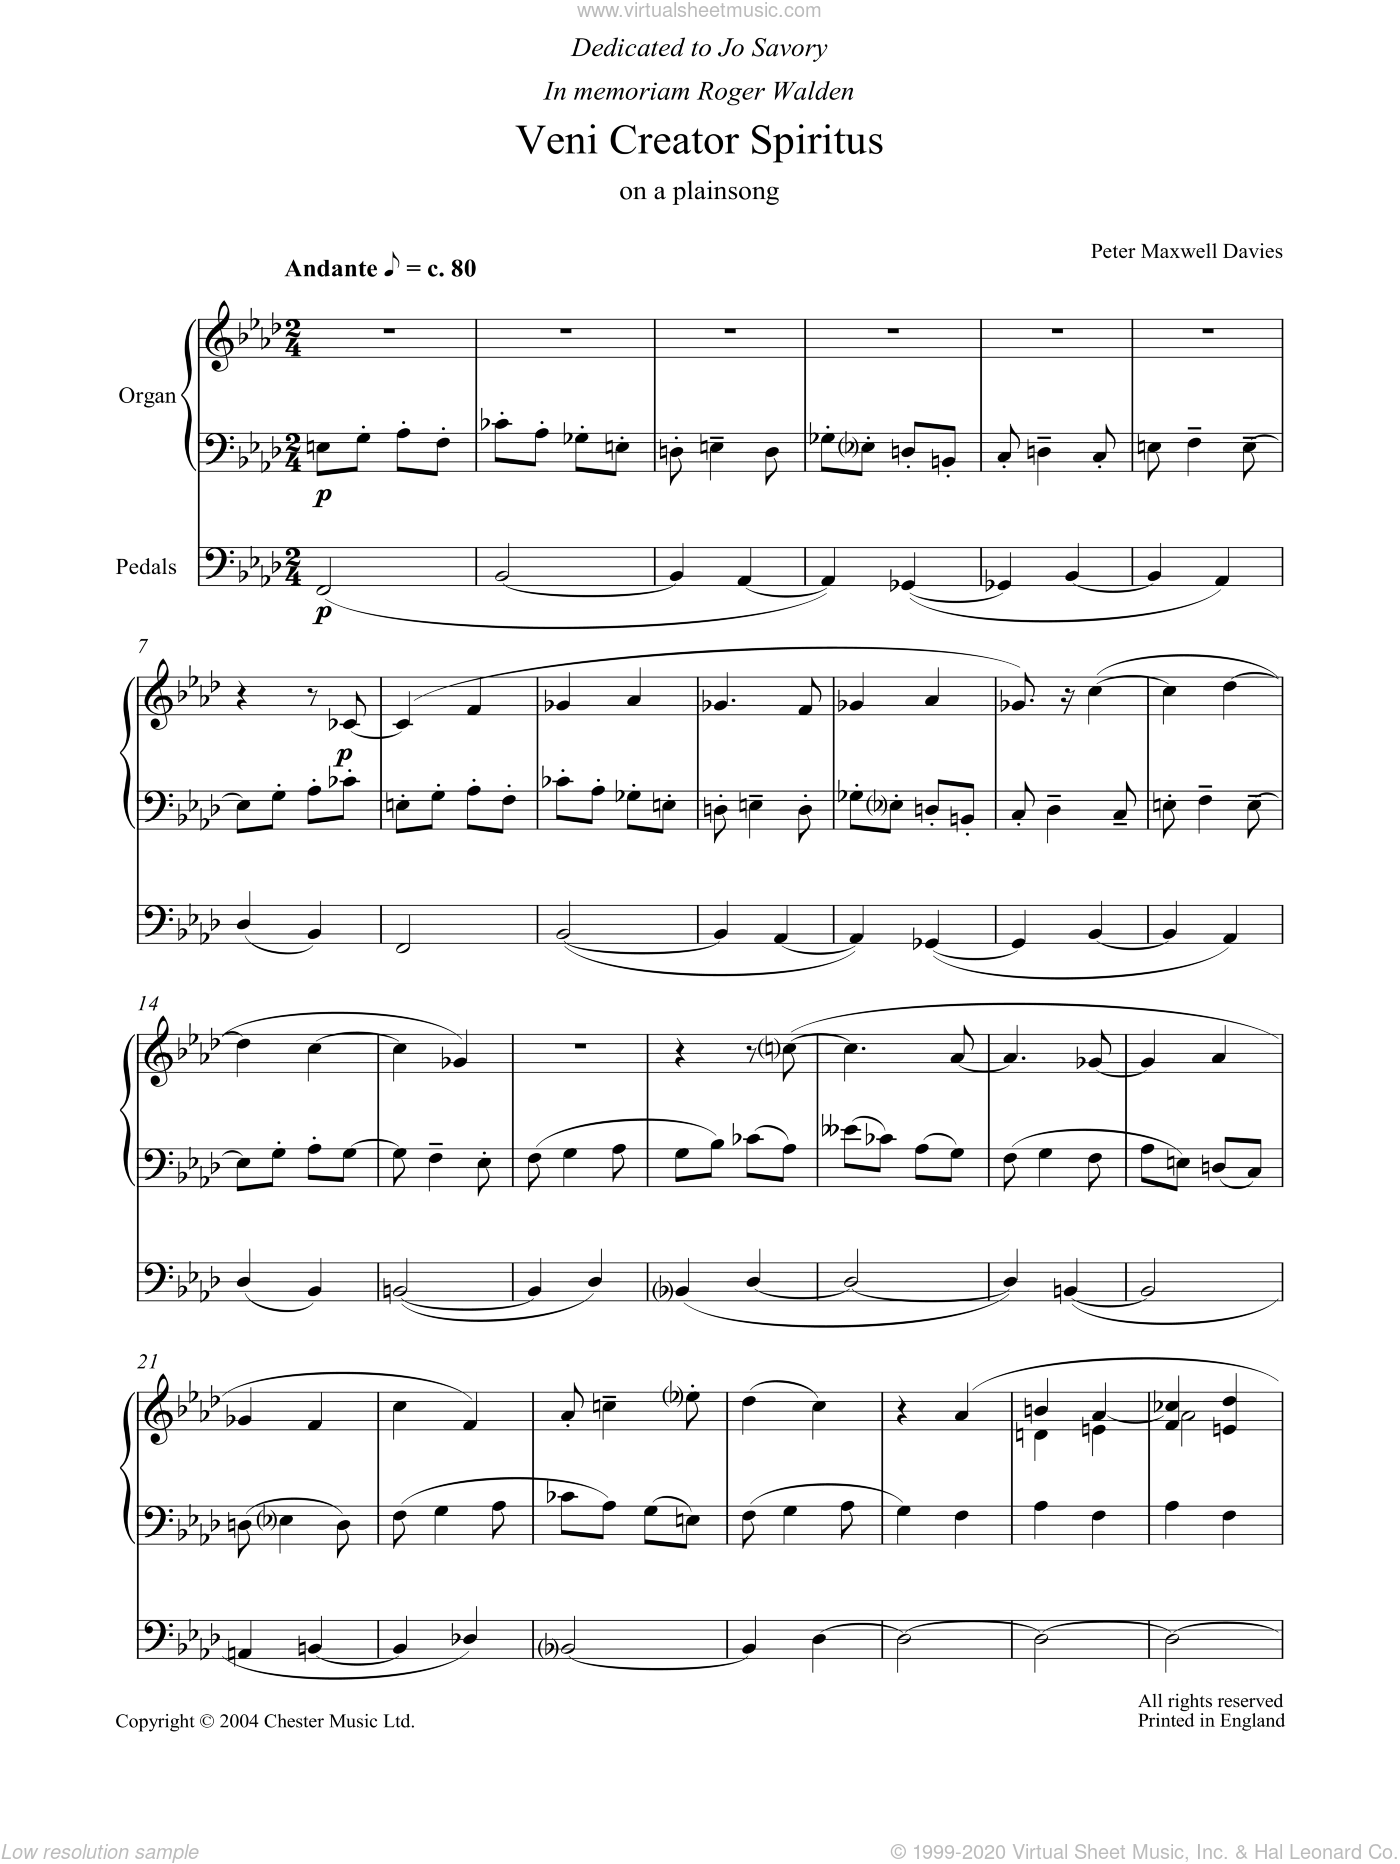 Veni Creator Spiritus sheet music for organ by Peter Maxwell Davies